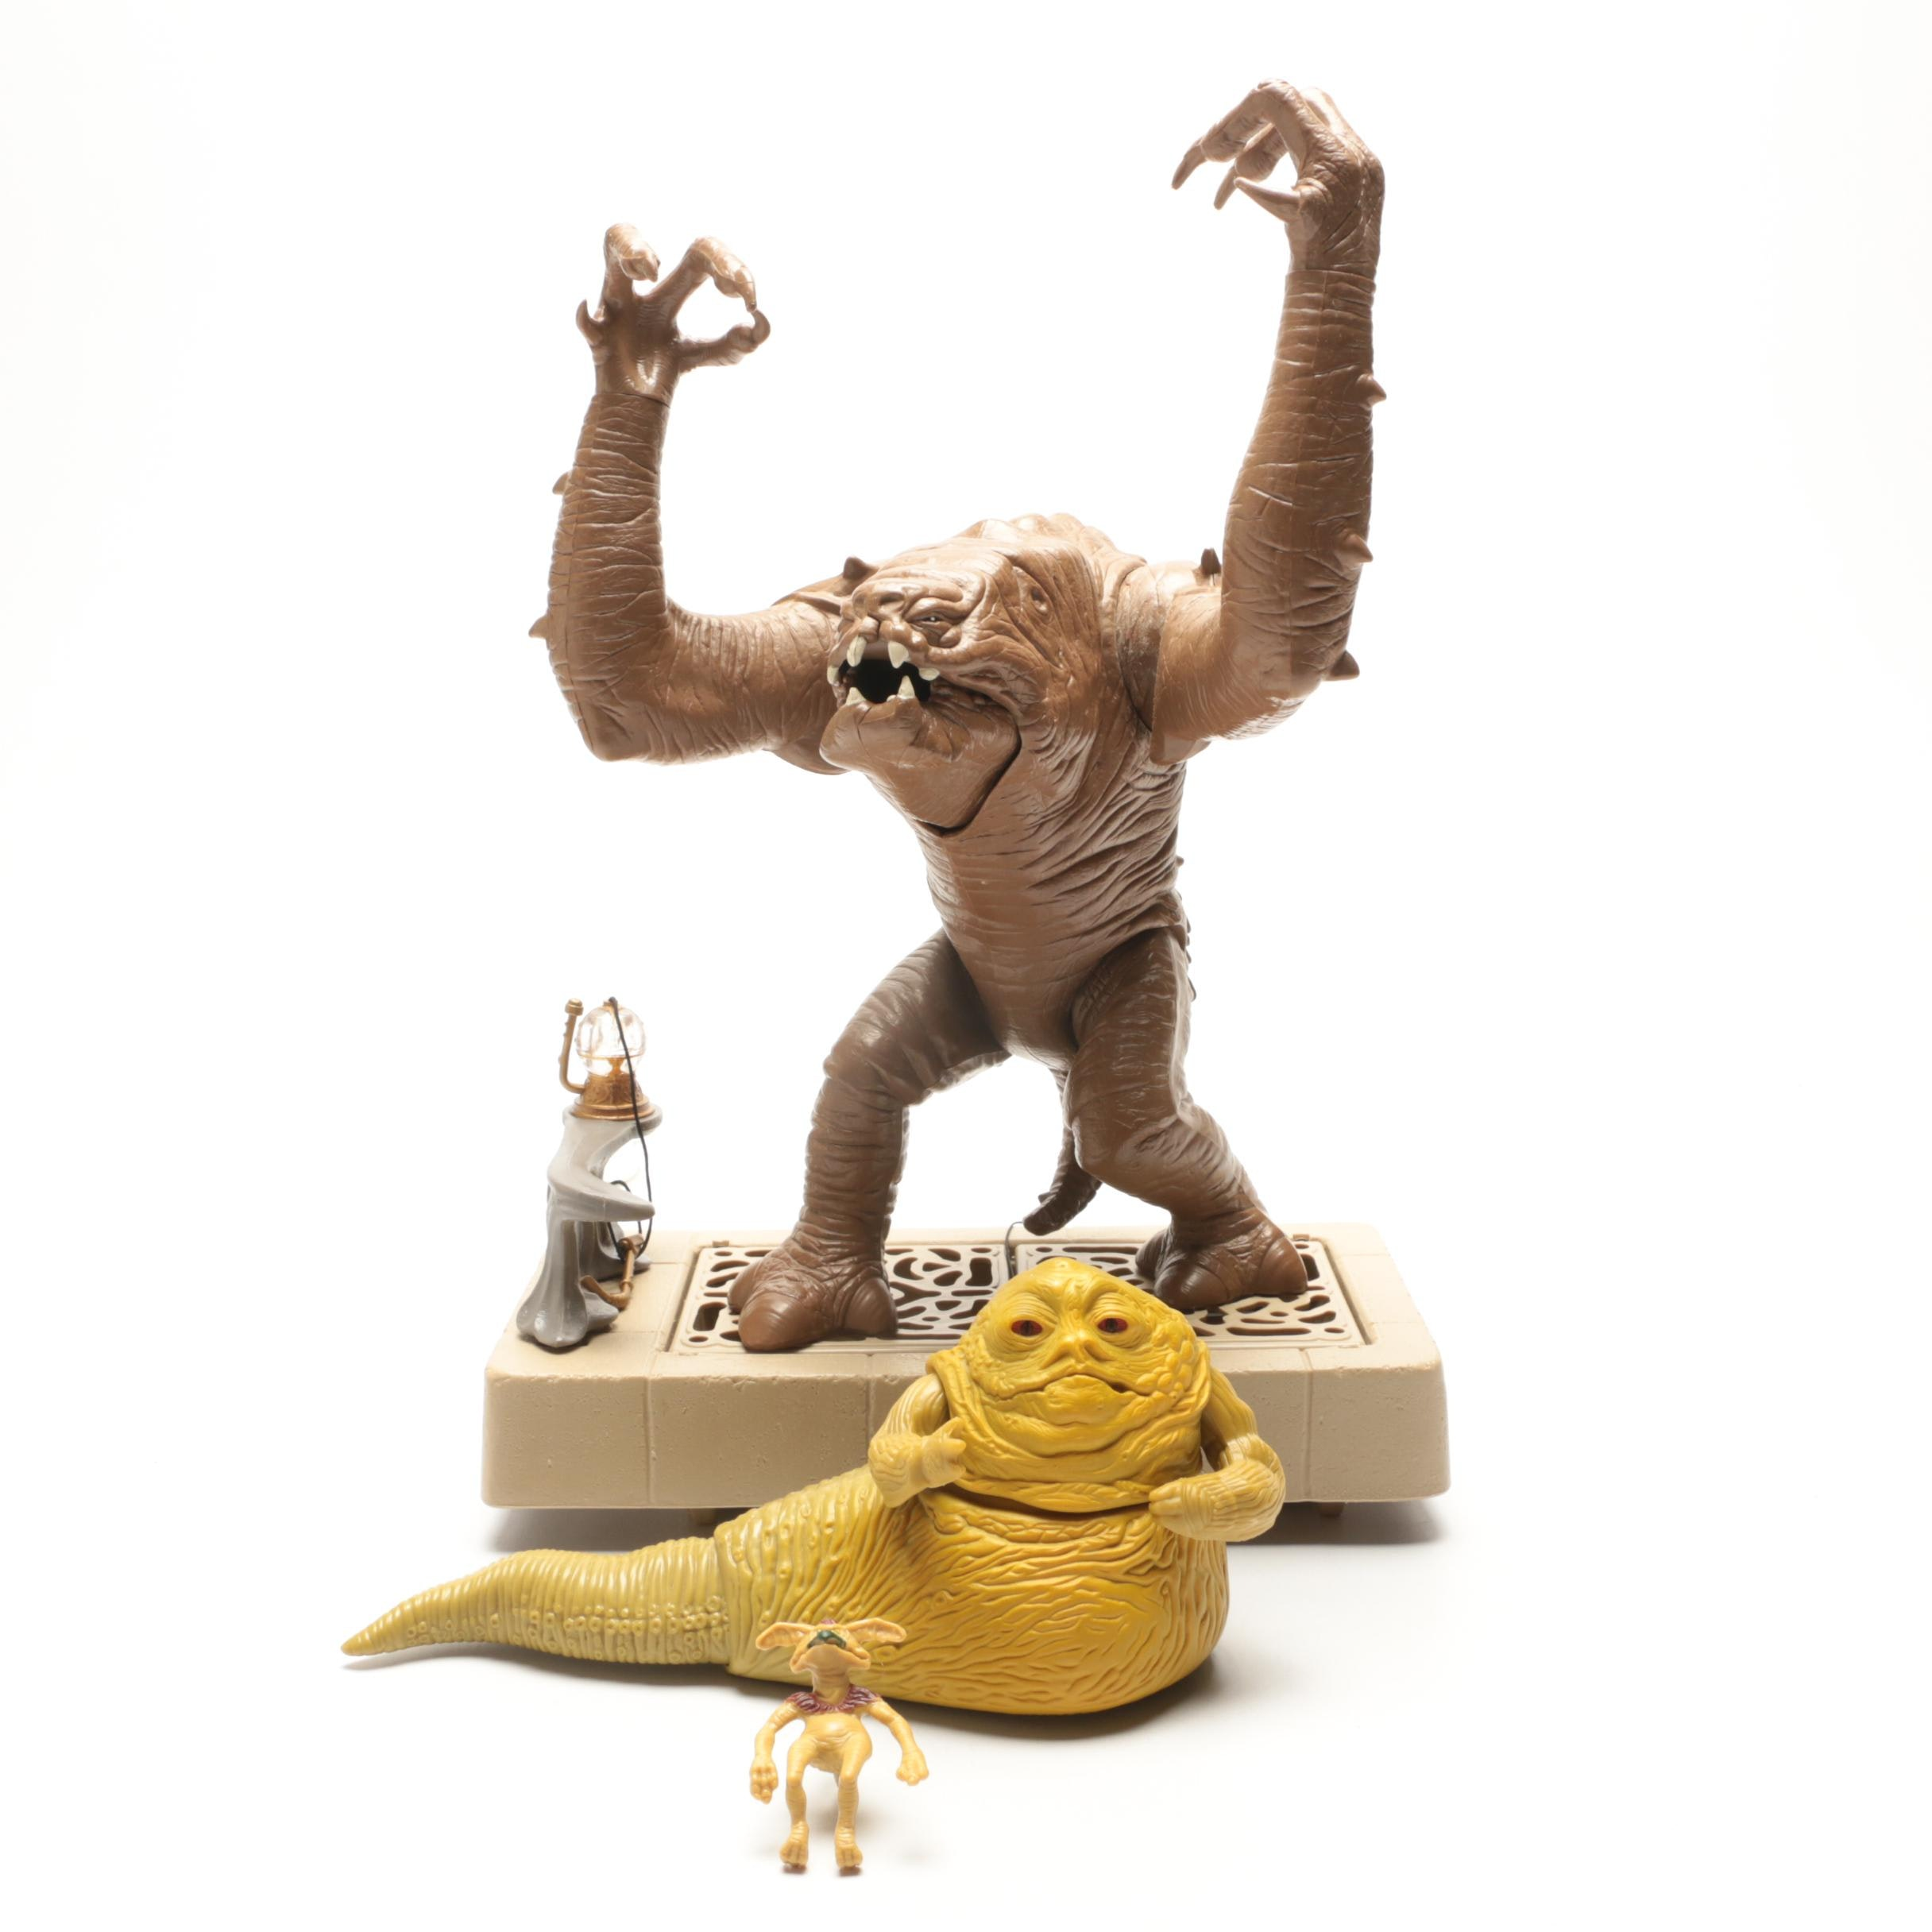 """Jabba The Hutt and Rancor Toys from """"The Empire Strikes Back"""" by Kenner"""